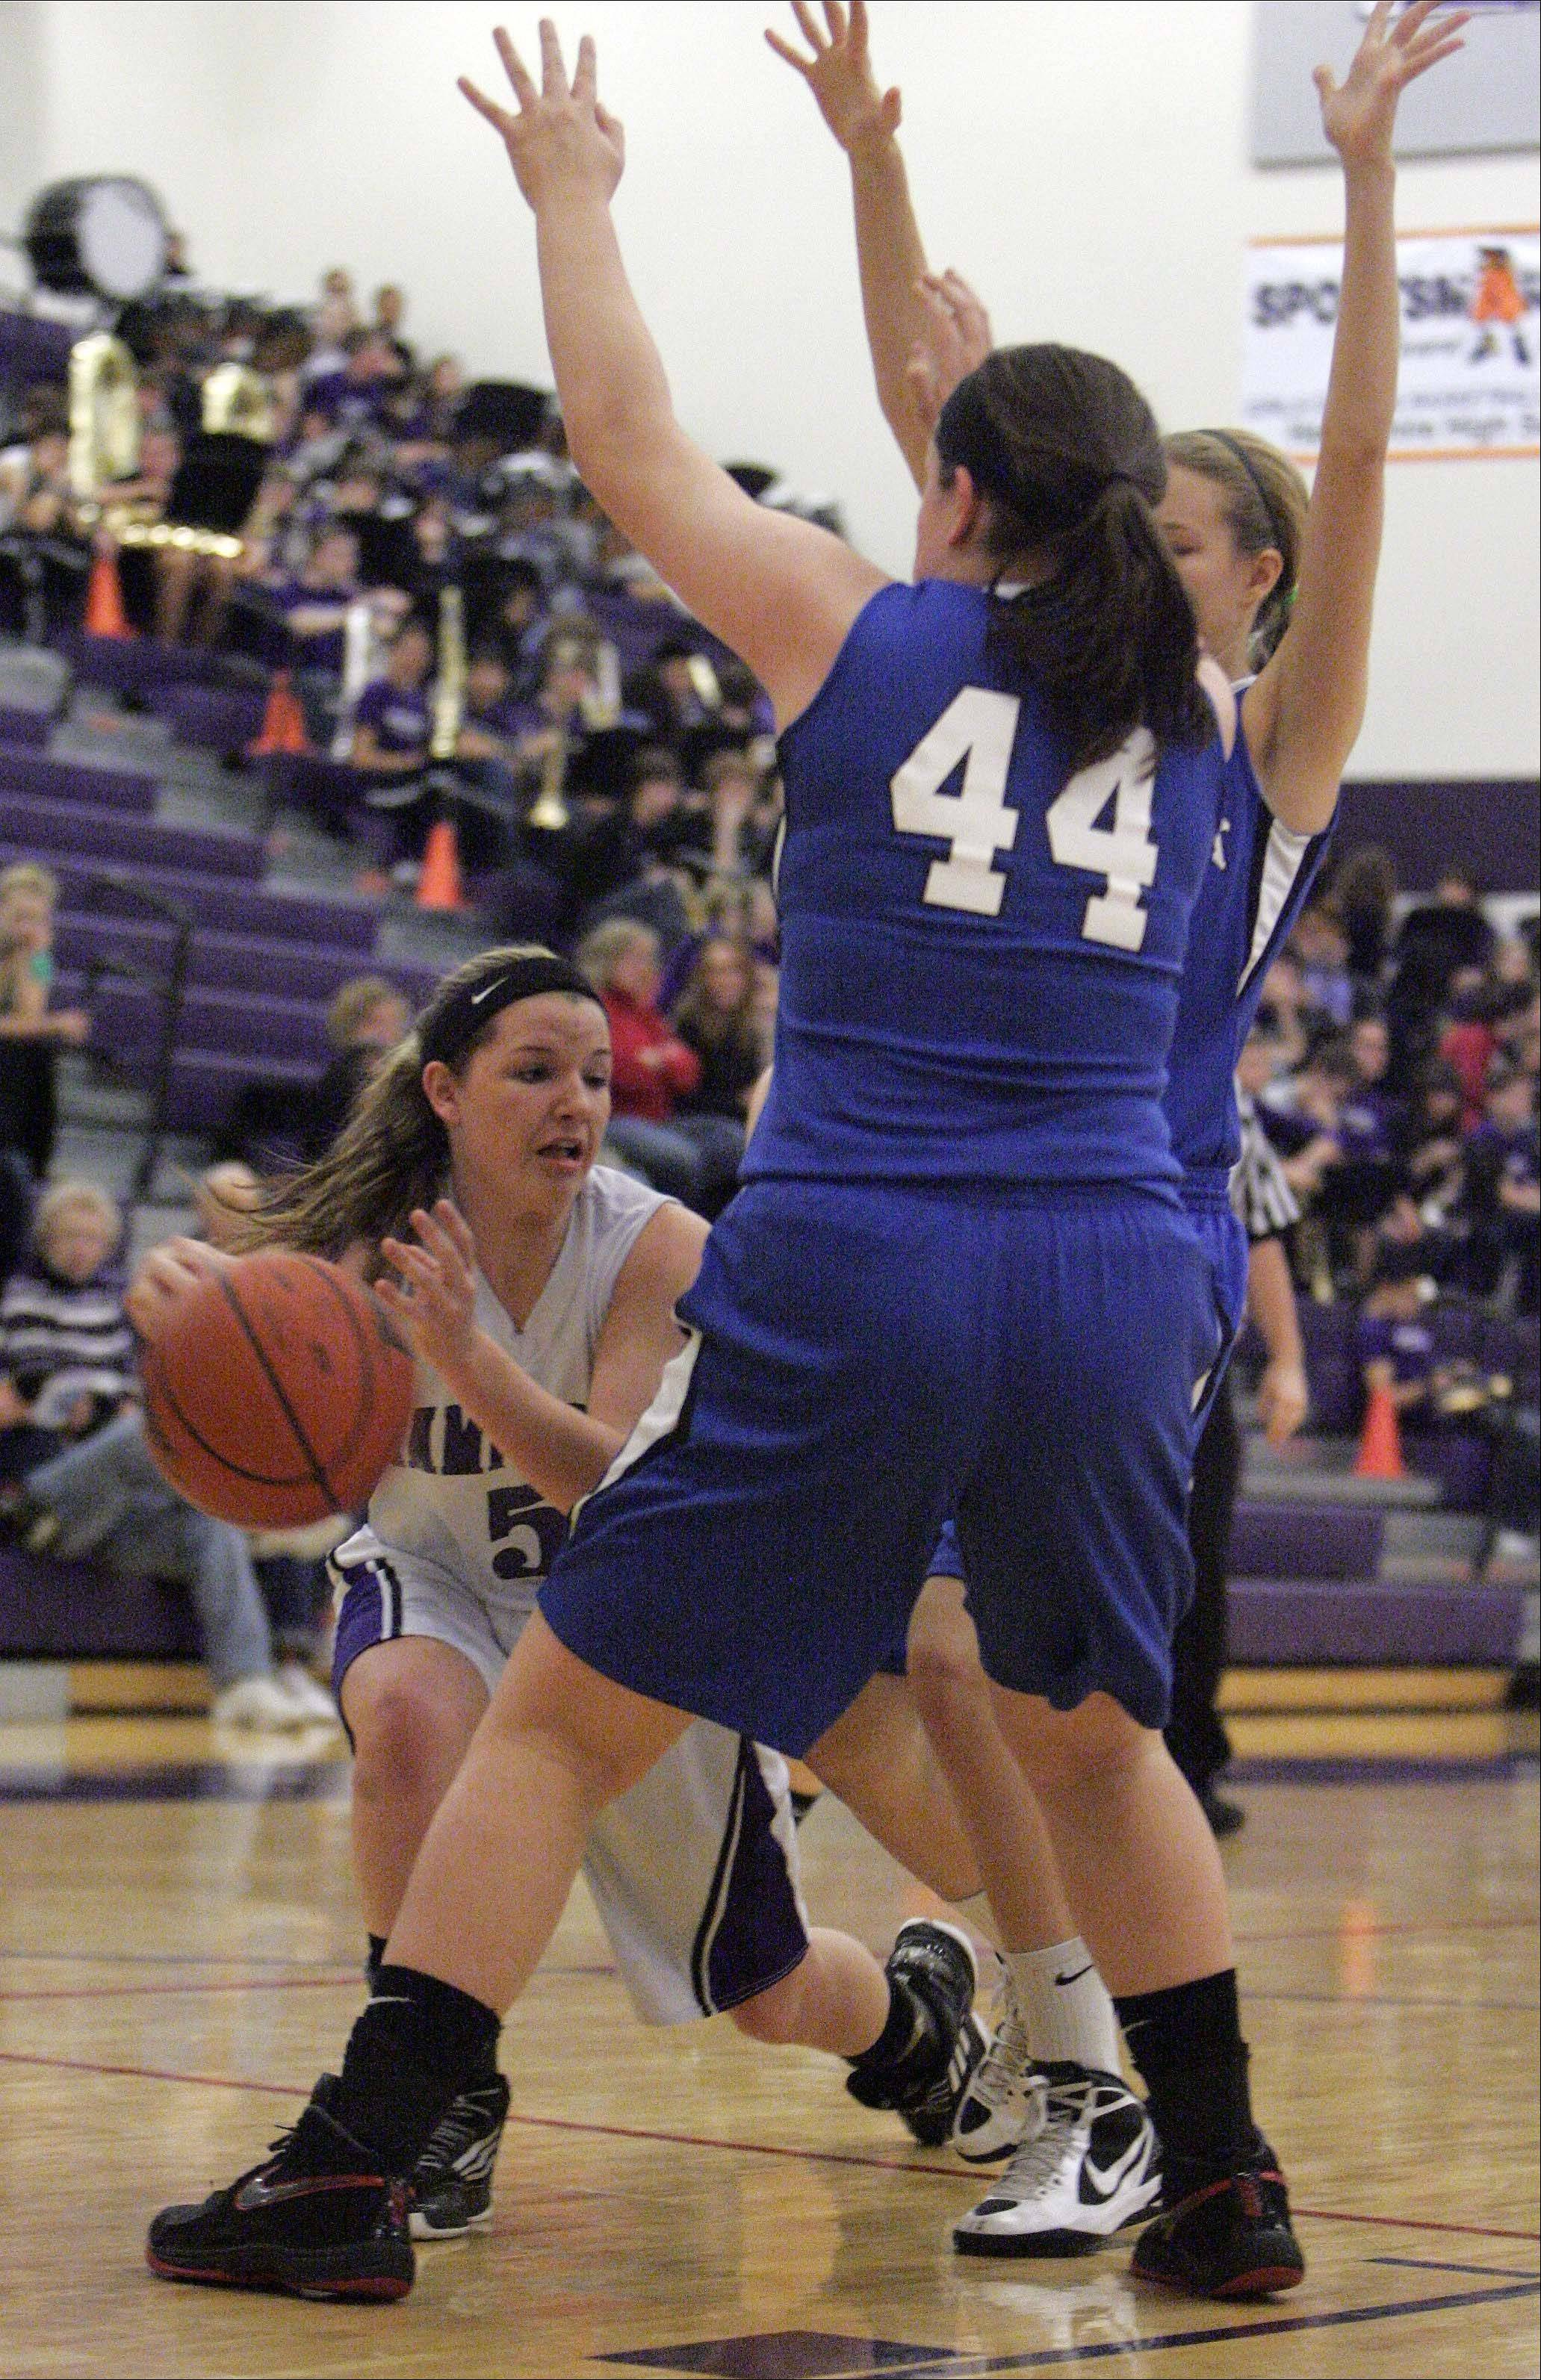 Images from the Woodstock vs. Hampshire girls basketball game Saturday, January 12, 2013.